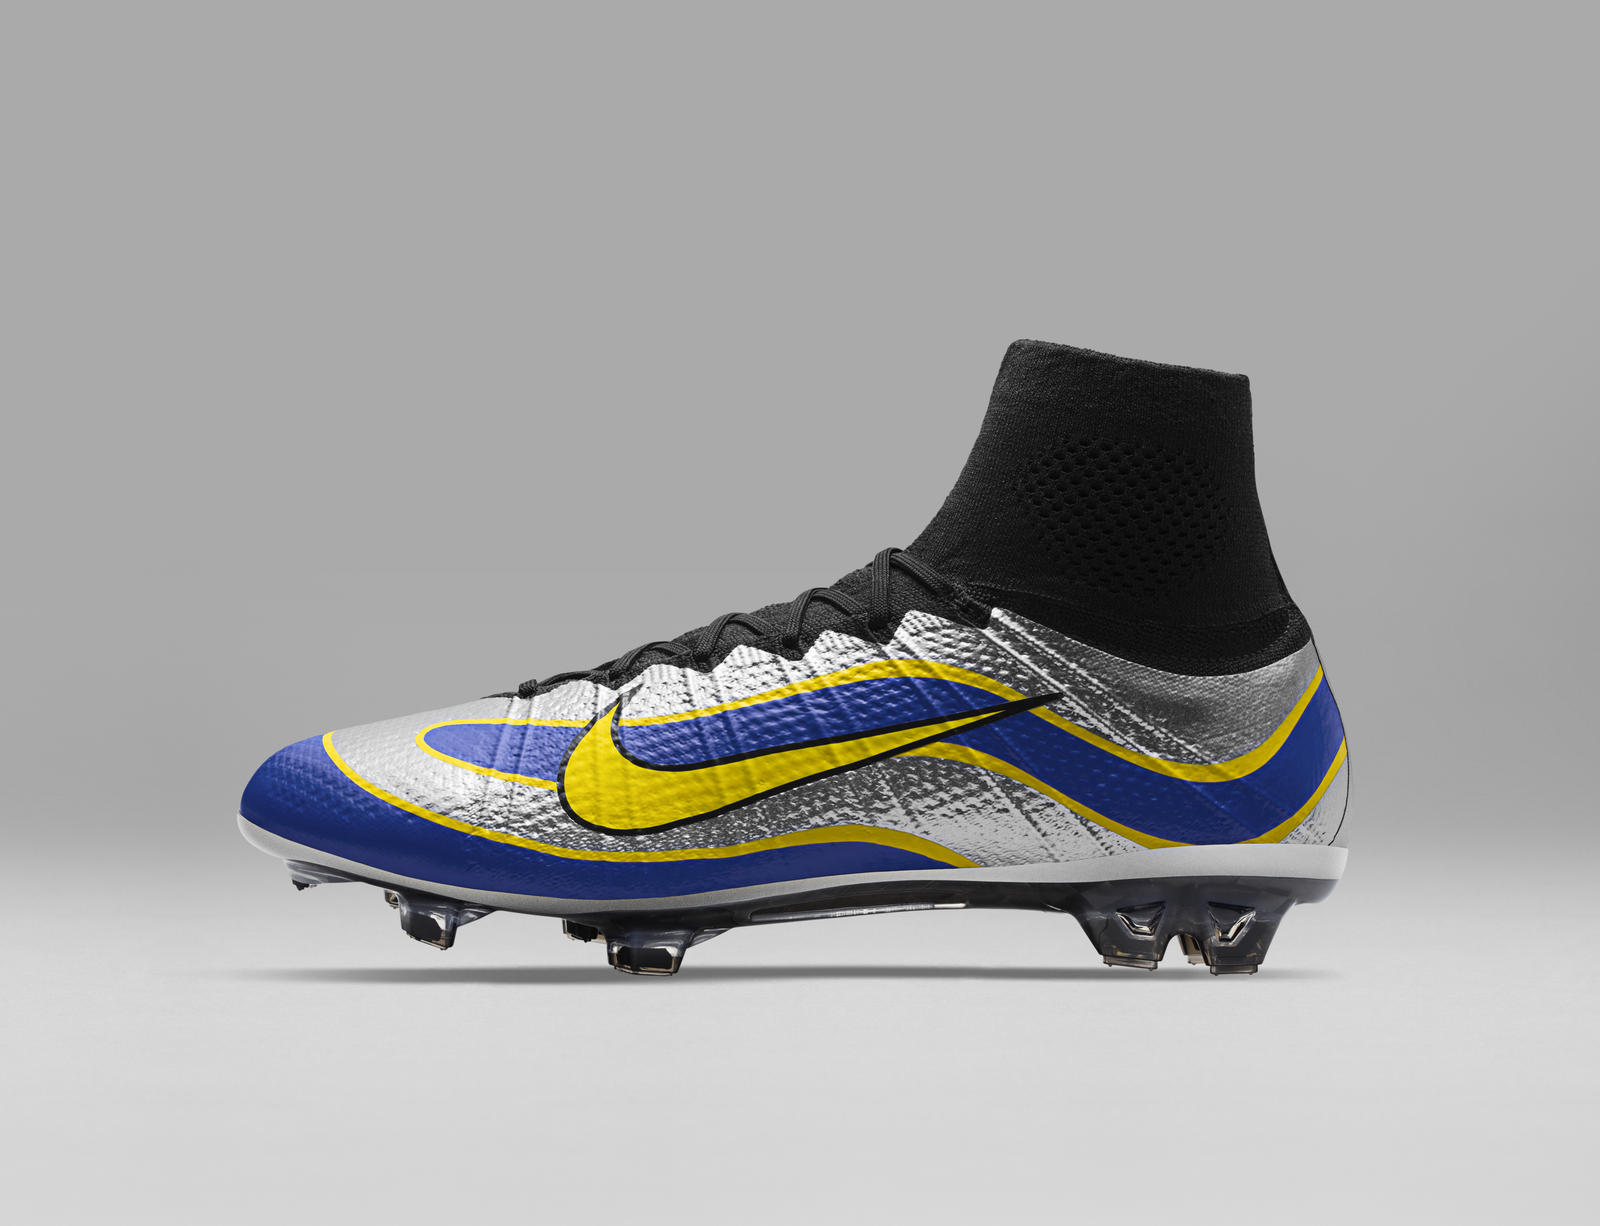 timeless design 2f832 fcce0 The Nike Mercurial Superfly Heritage iD Is Now Available ...